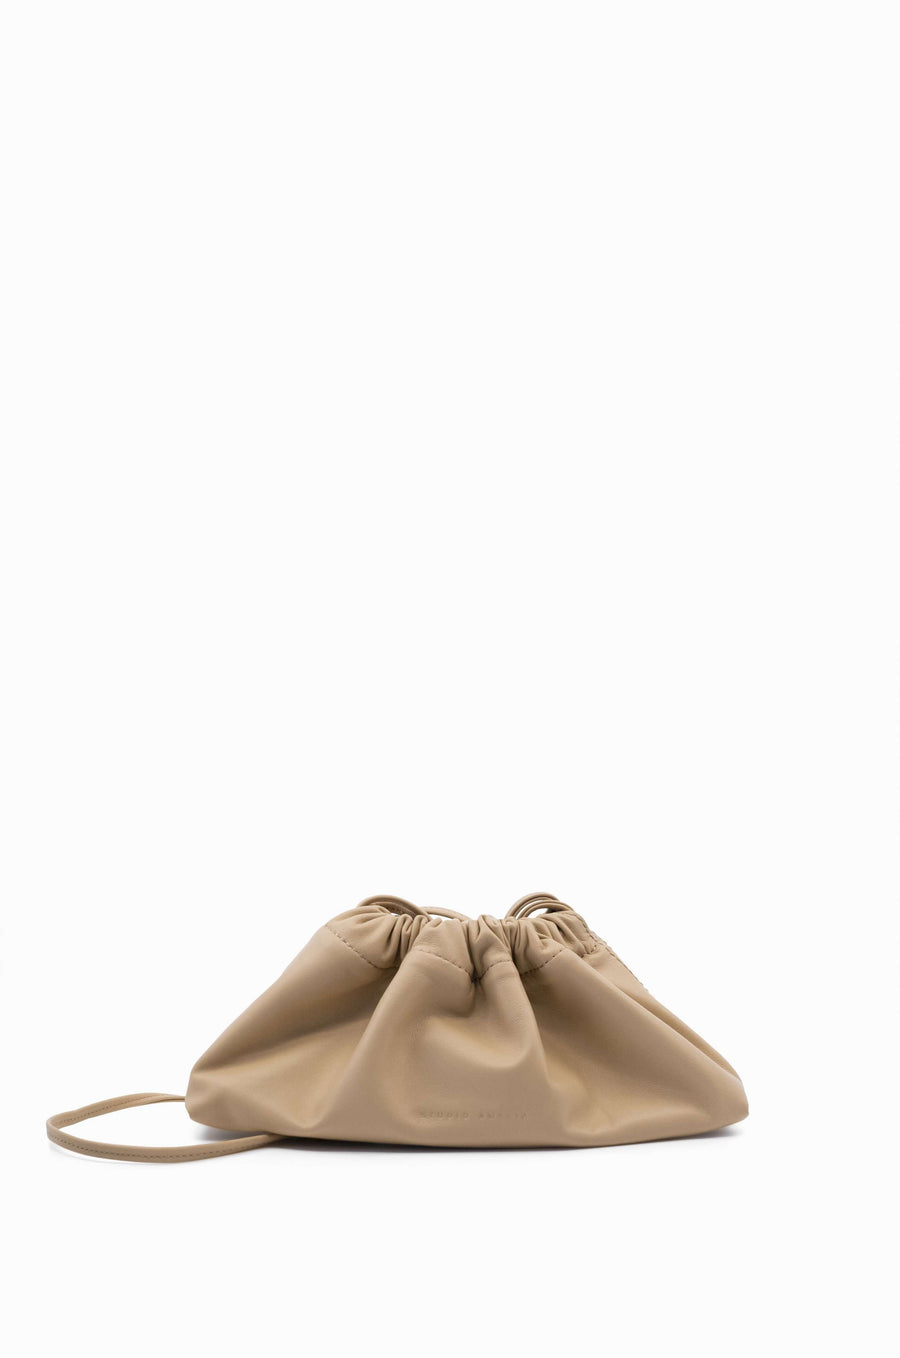 1.1 Nude Mini Bag